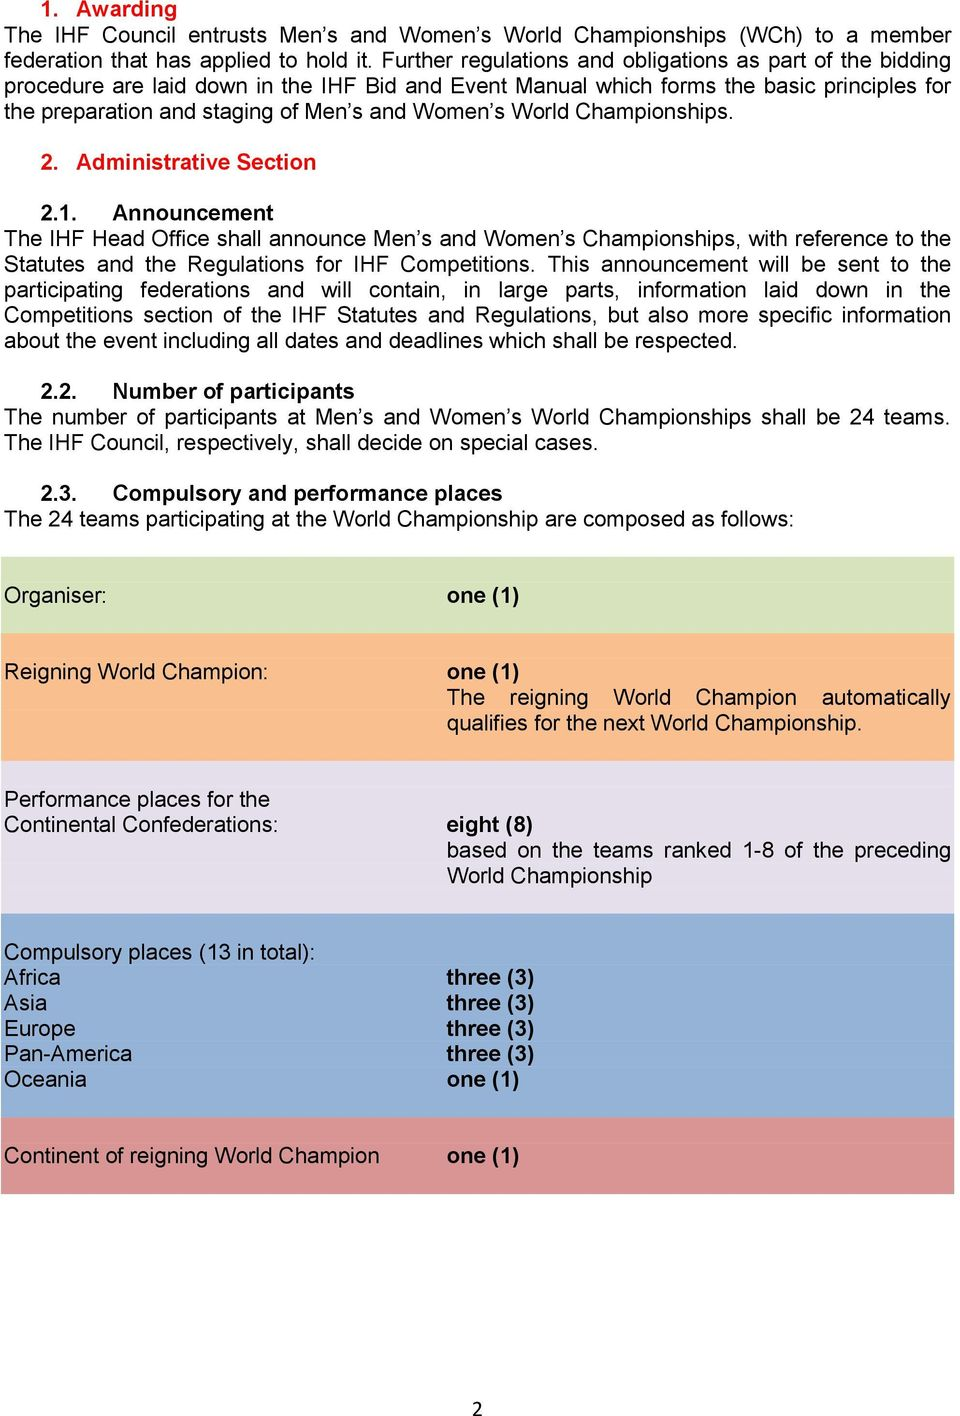 s World Championships. 2. Administrative Section 2.1.